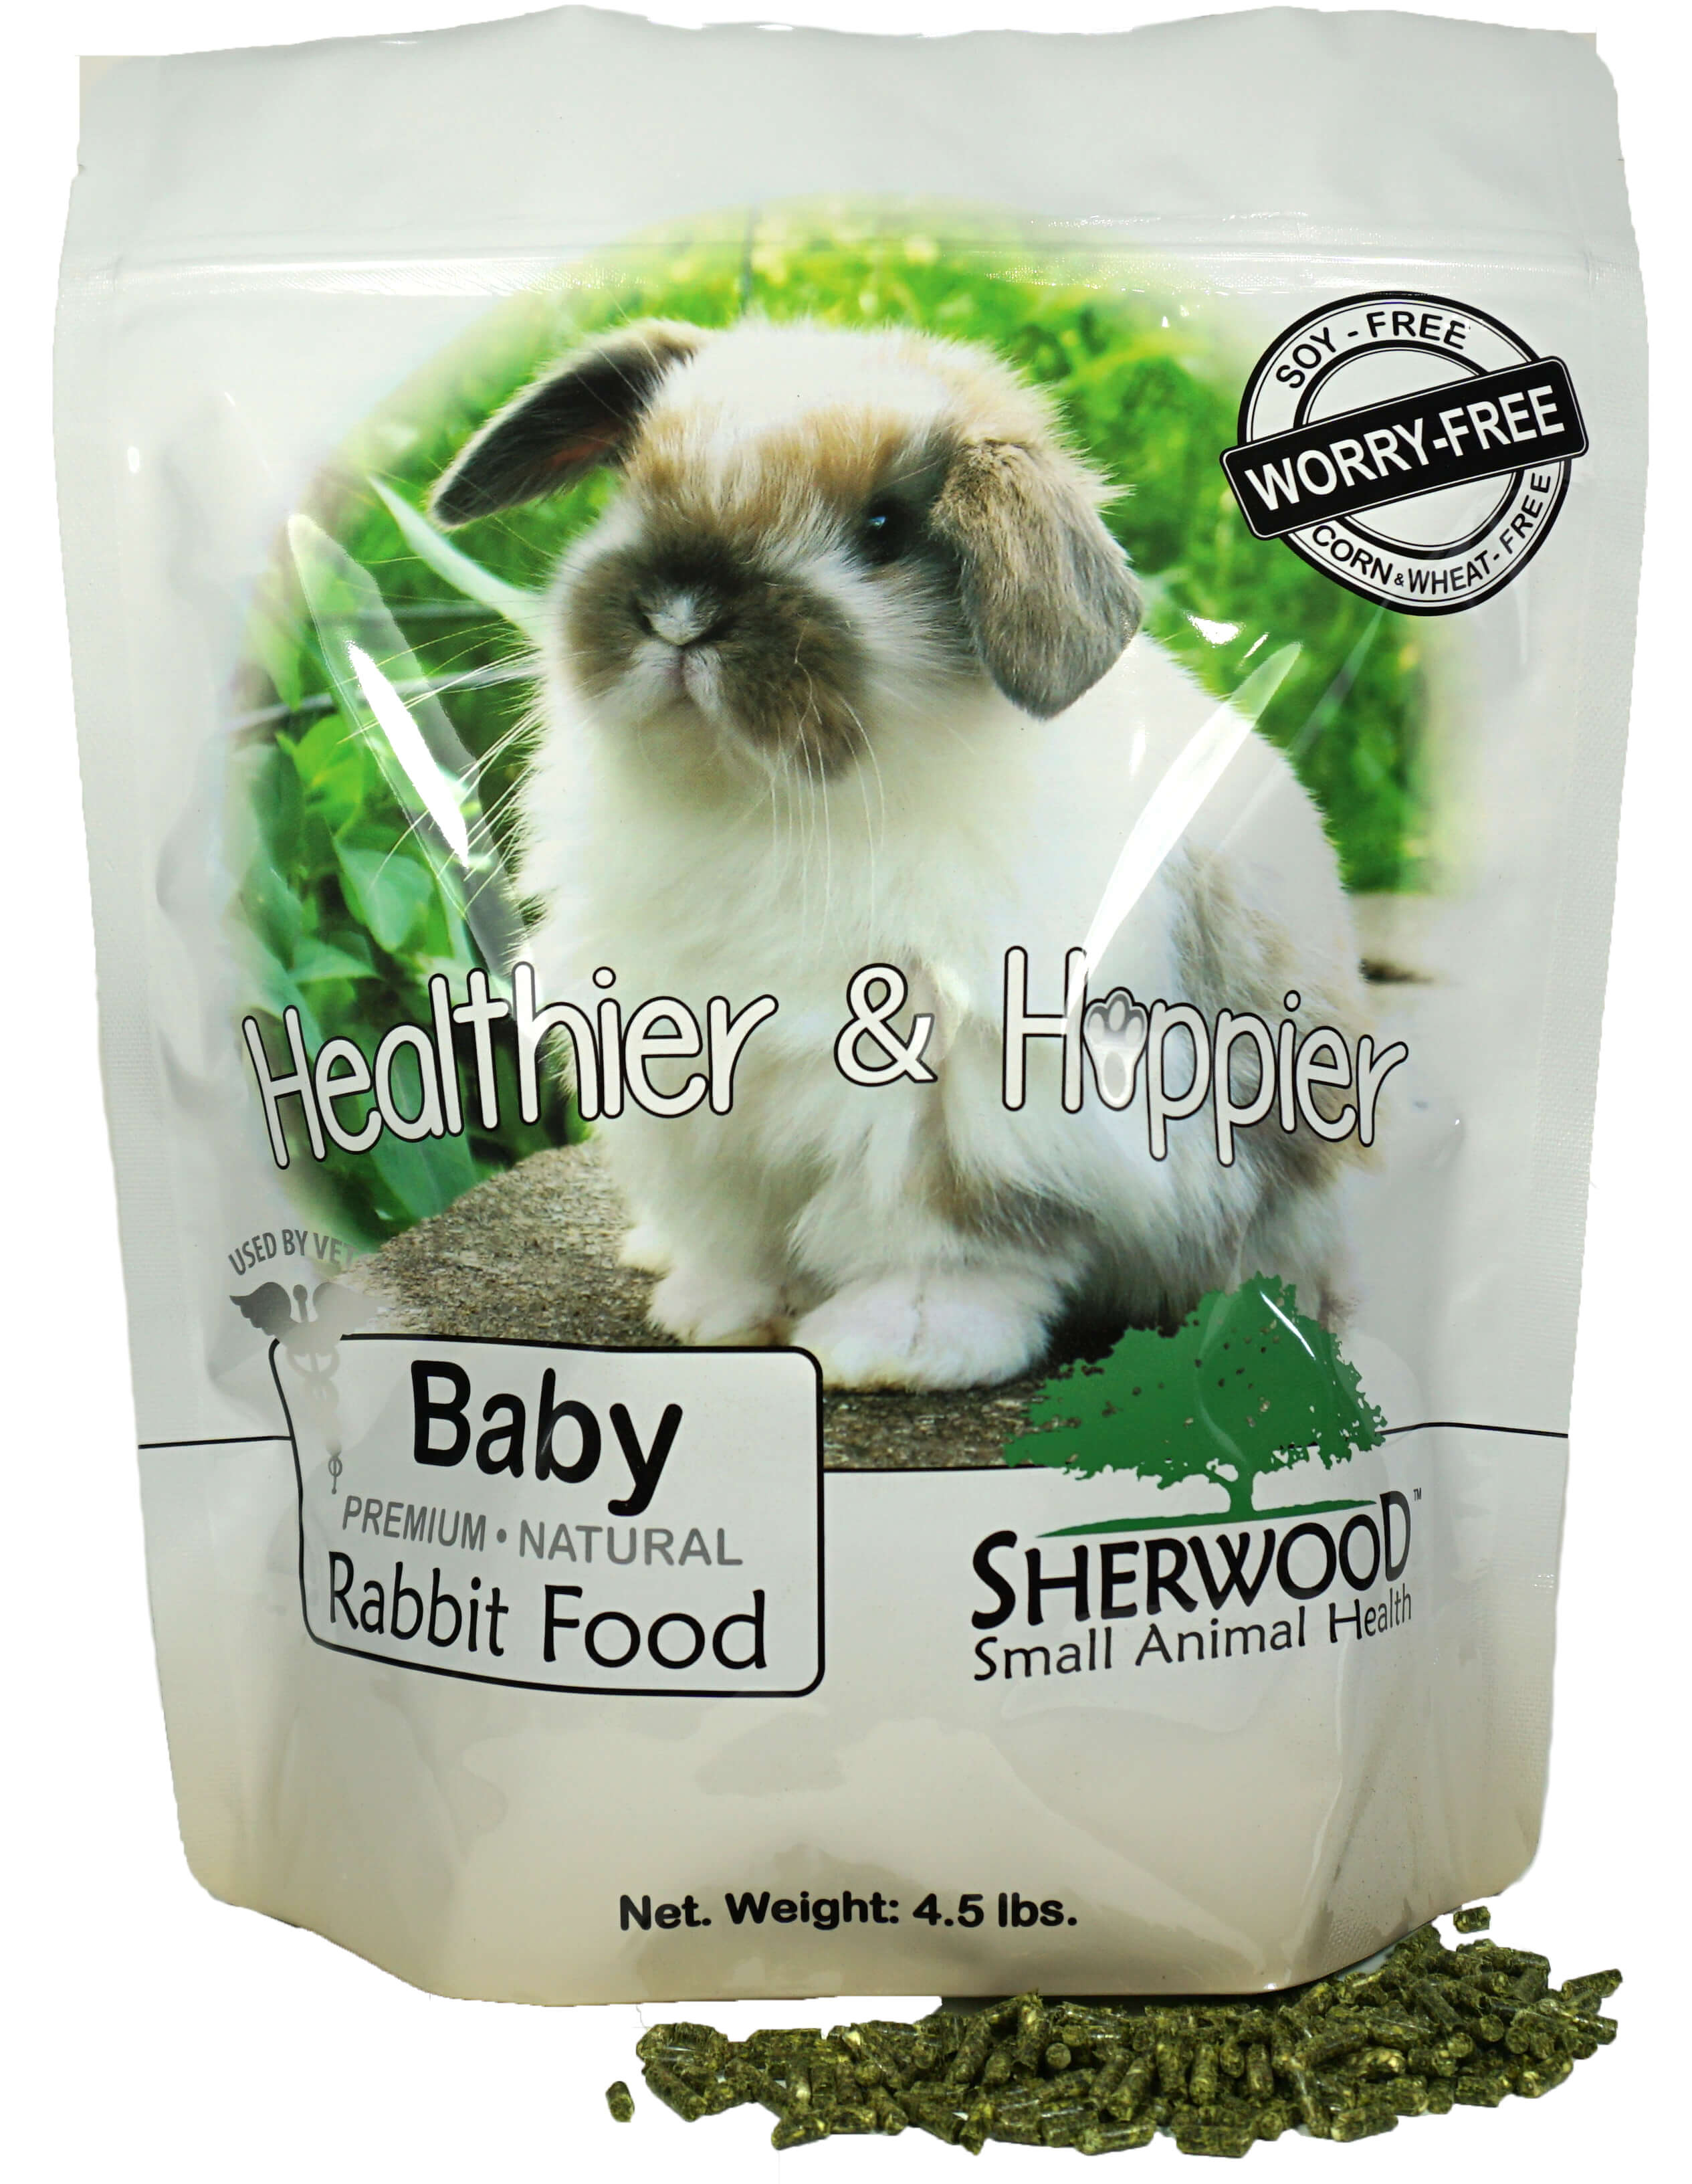 Rabbit Food, Baby by Sherwood Pet Health, 4.5 lb. (Soy, Corn & Wheat-free) (Vet Used) by Sherwood Pet Health